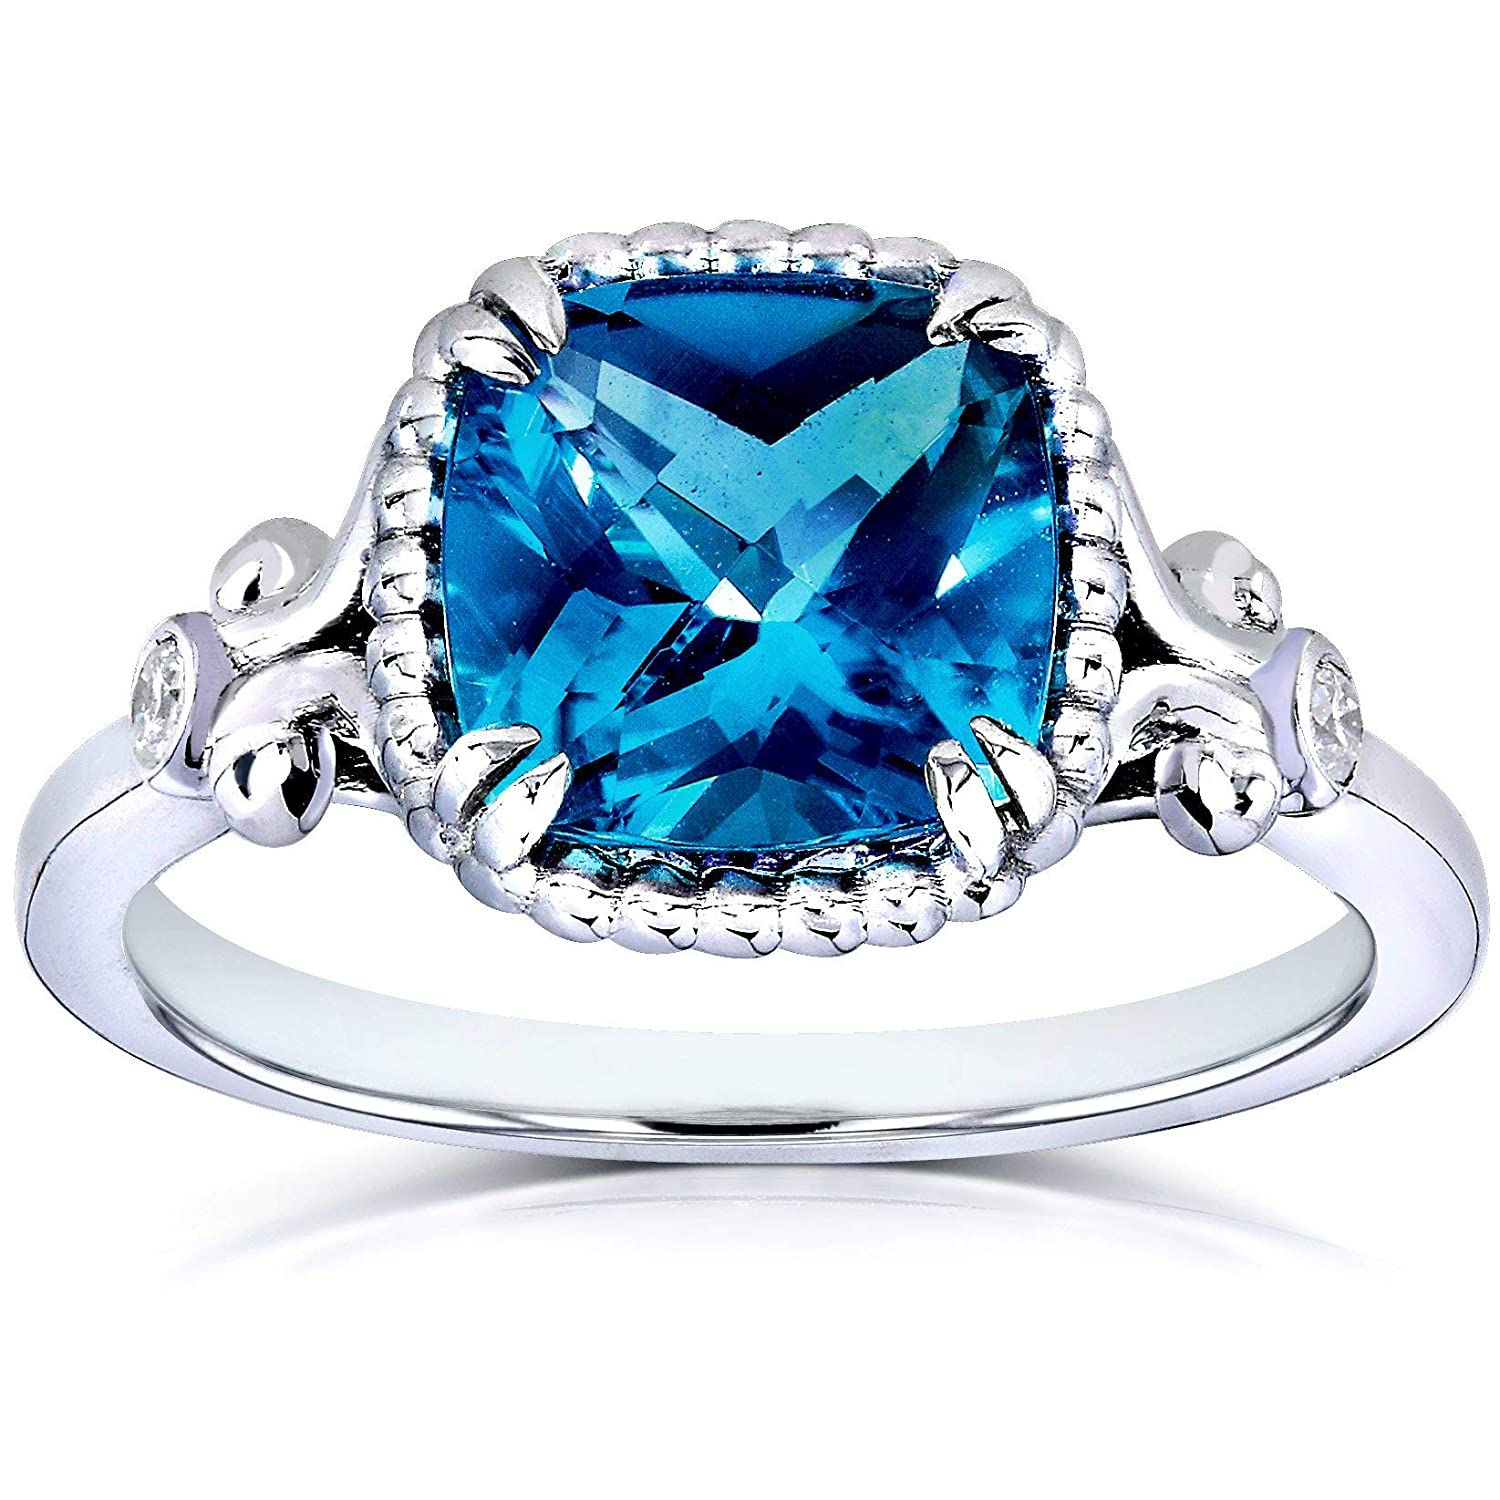 Kobelli Cushion Cut London Blue Topaz And Diamond Engagement Ring 2 1 3 Carat Ctw In Silver With 14k Plated